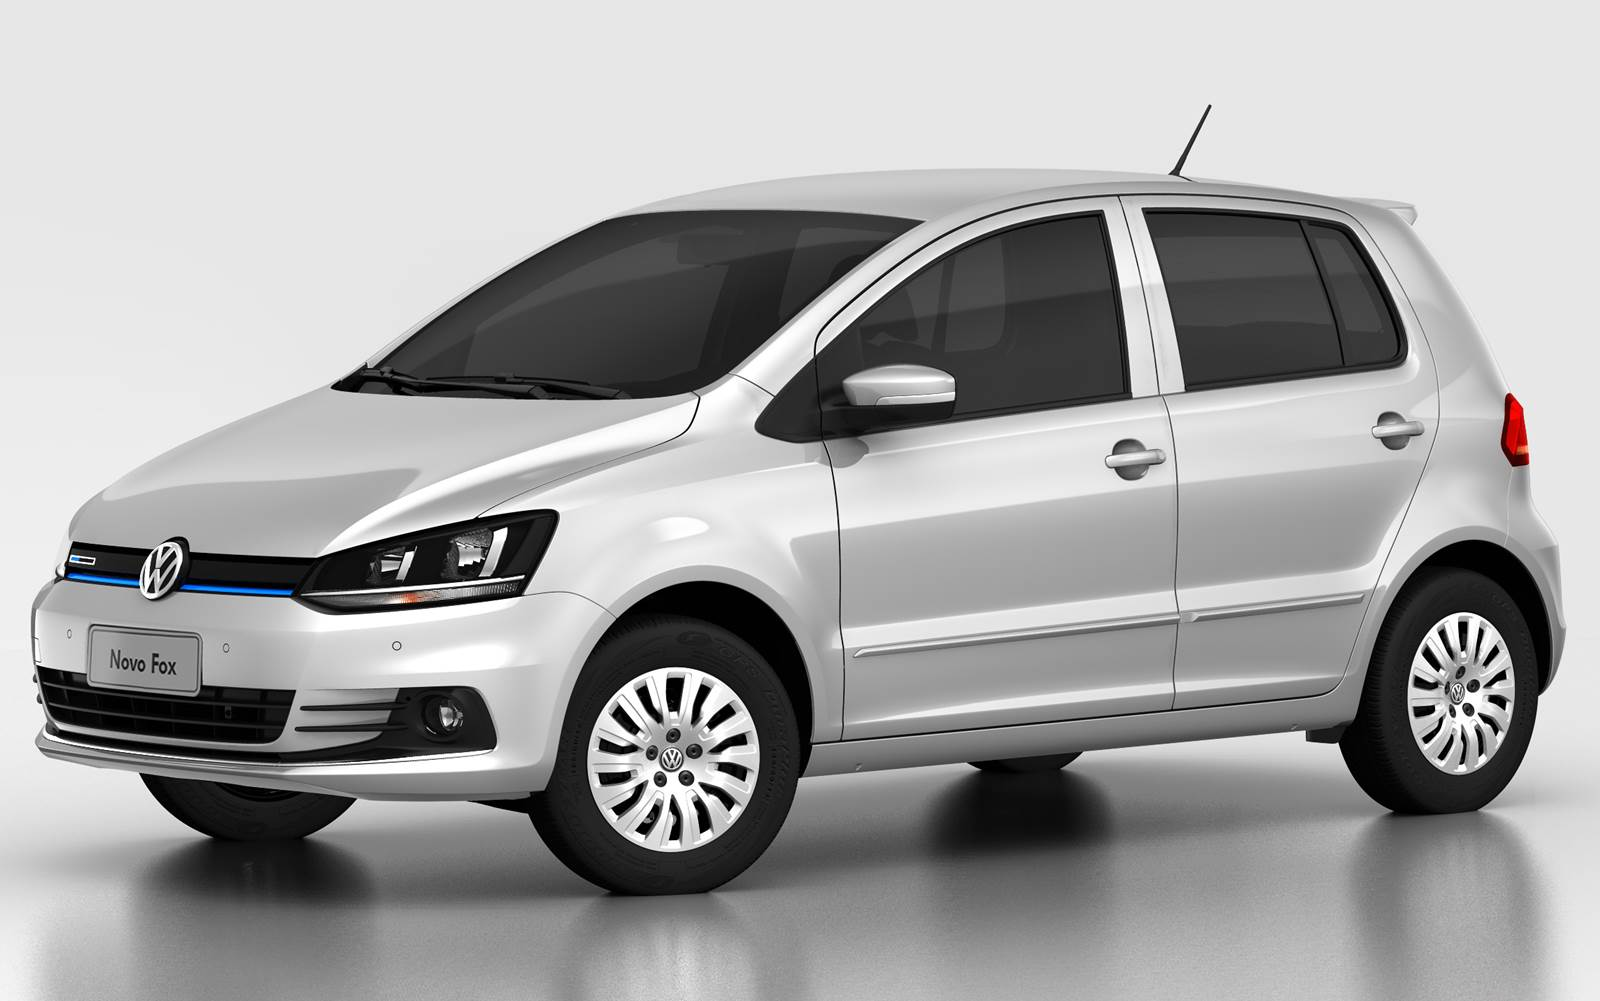 2016 volkswagen fox pictures information and specs auto. Black Bedroom Furniture Sets. Home Design Ideas